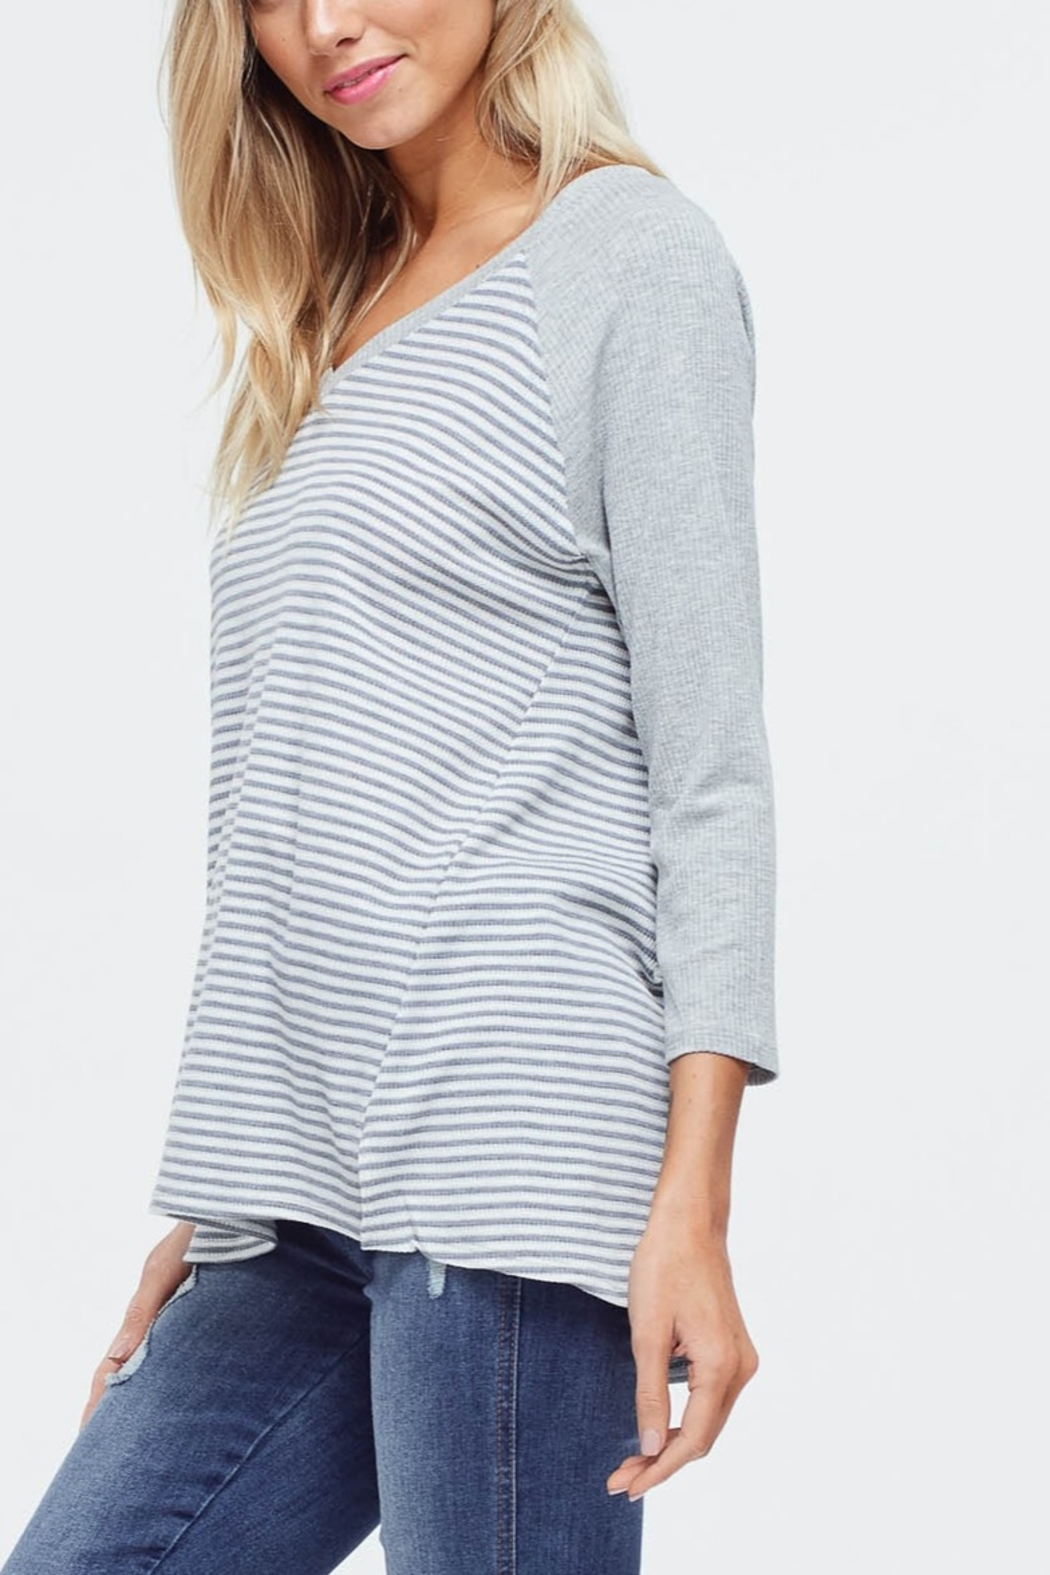 Lyn-Maree's  Waffle Knit Stripe Top - Main Image